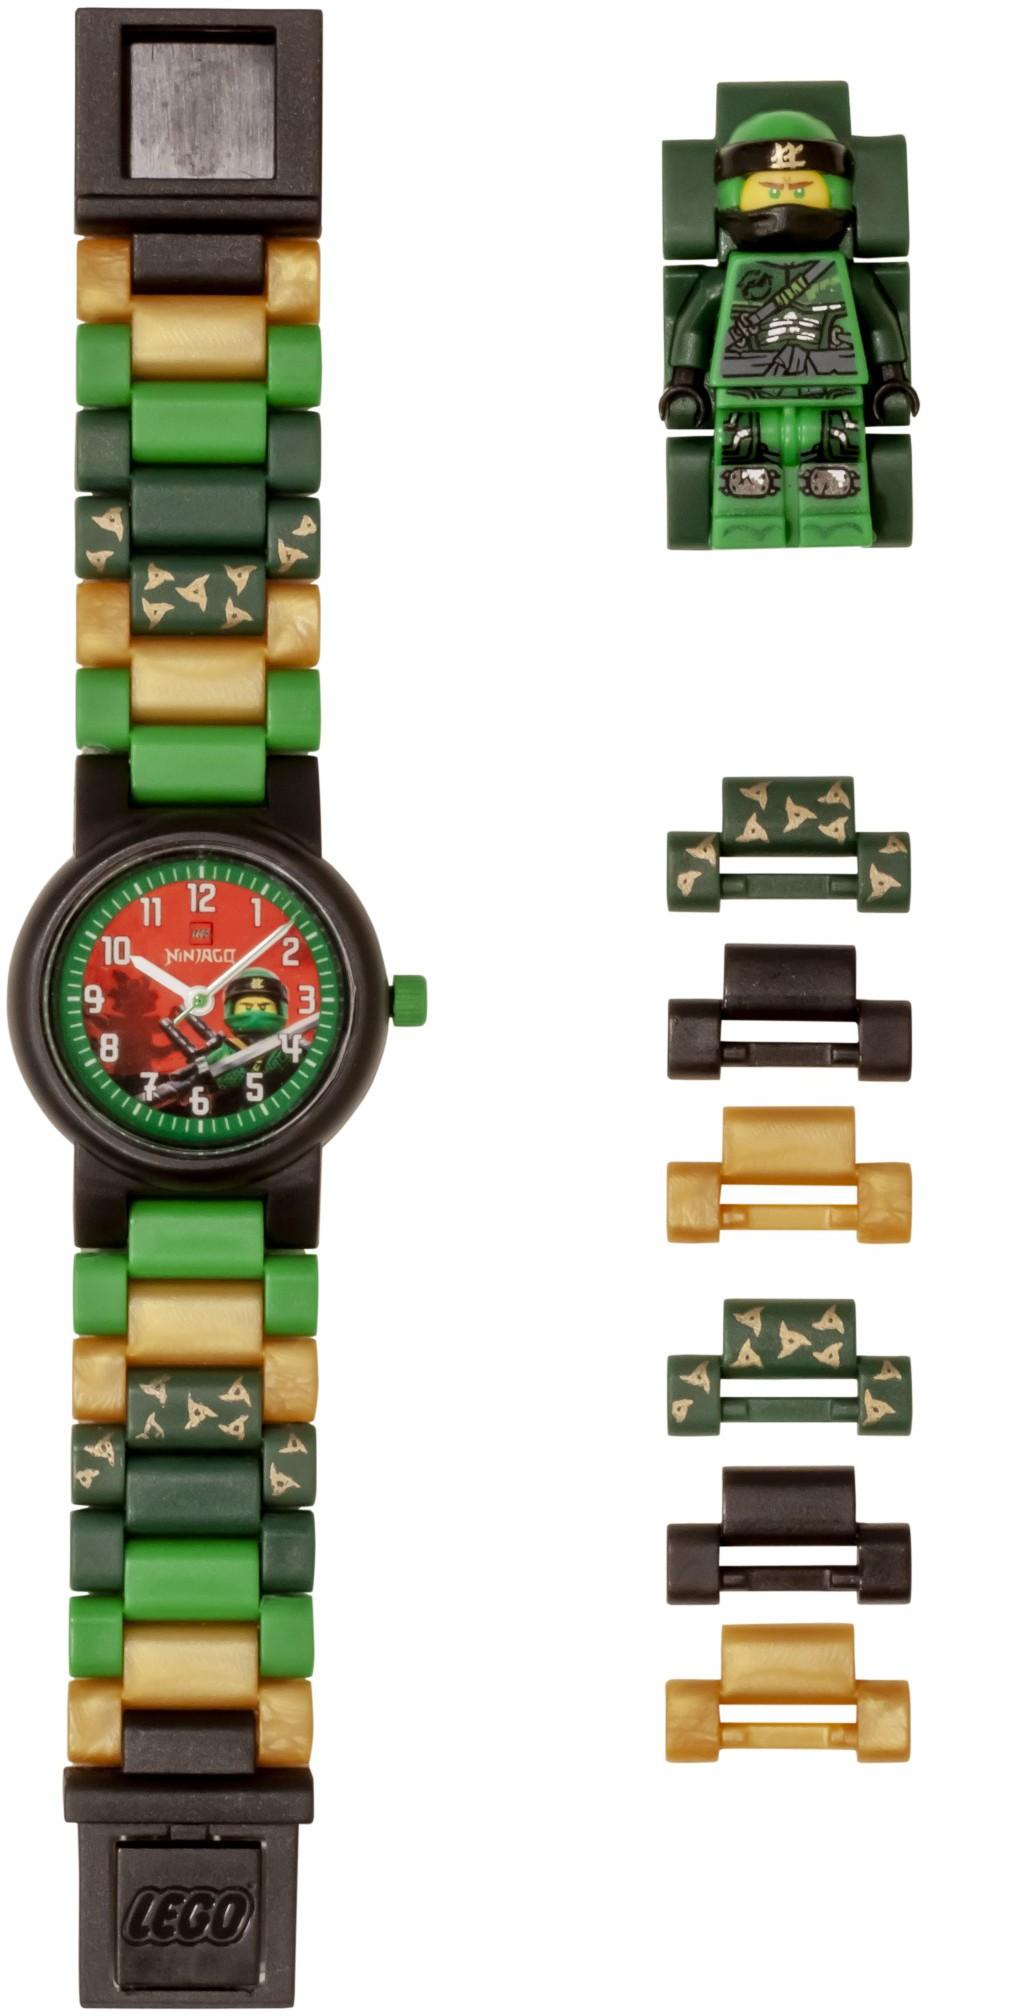 LEGO Ninjago - Lloyd Minifigure Link Buildable Watch - Heromic 4babff9245de6